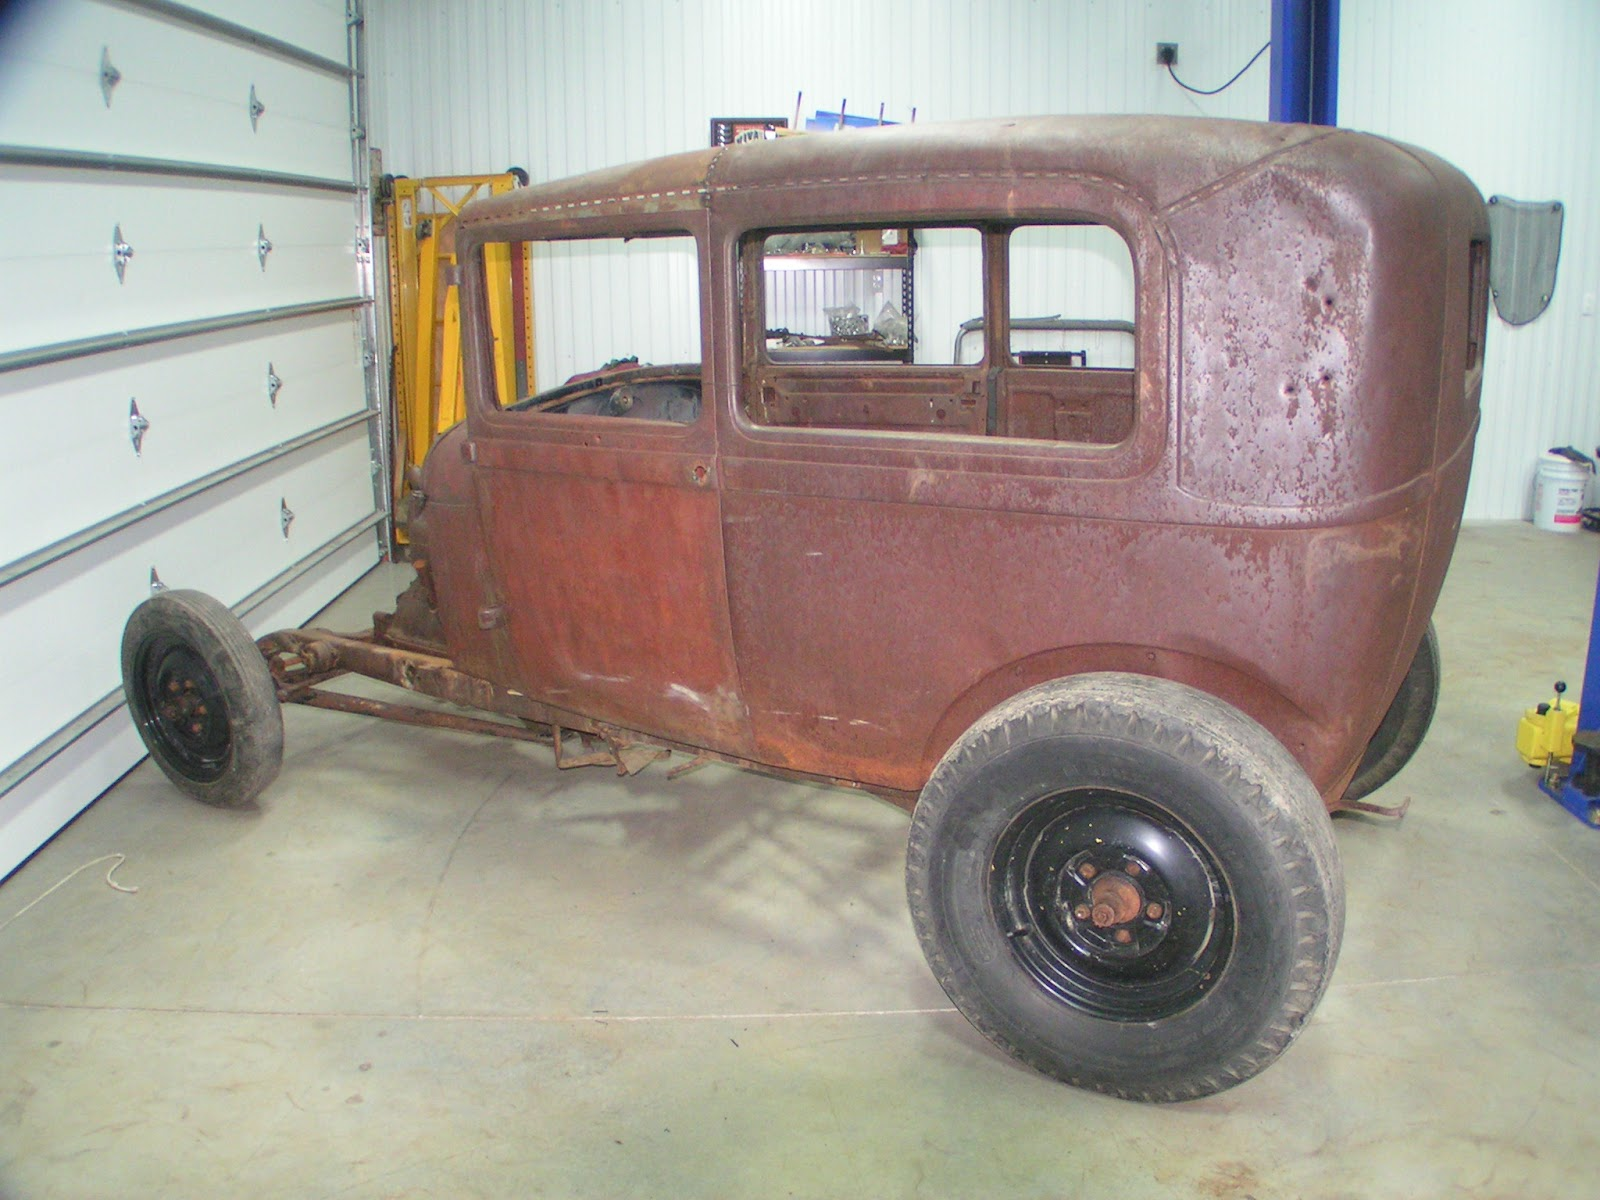 Reel rods inc shop update project for sale 1928 ford for 1928 ford 2 door sedan